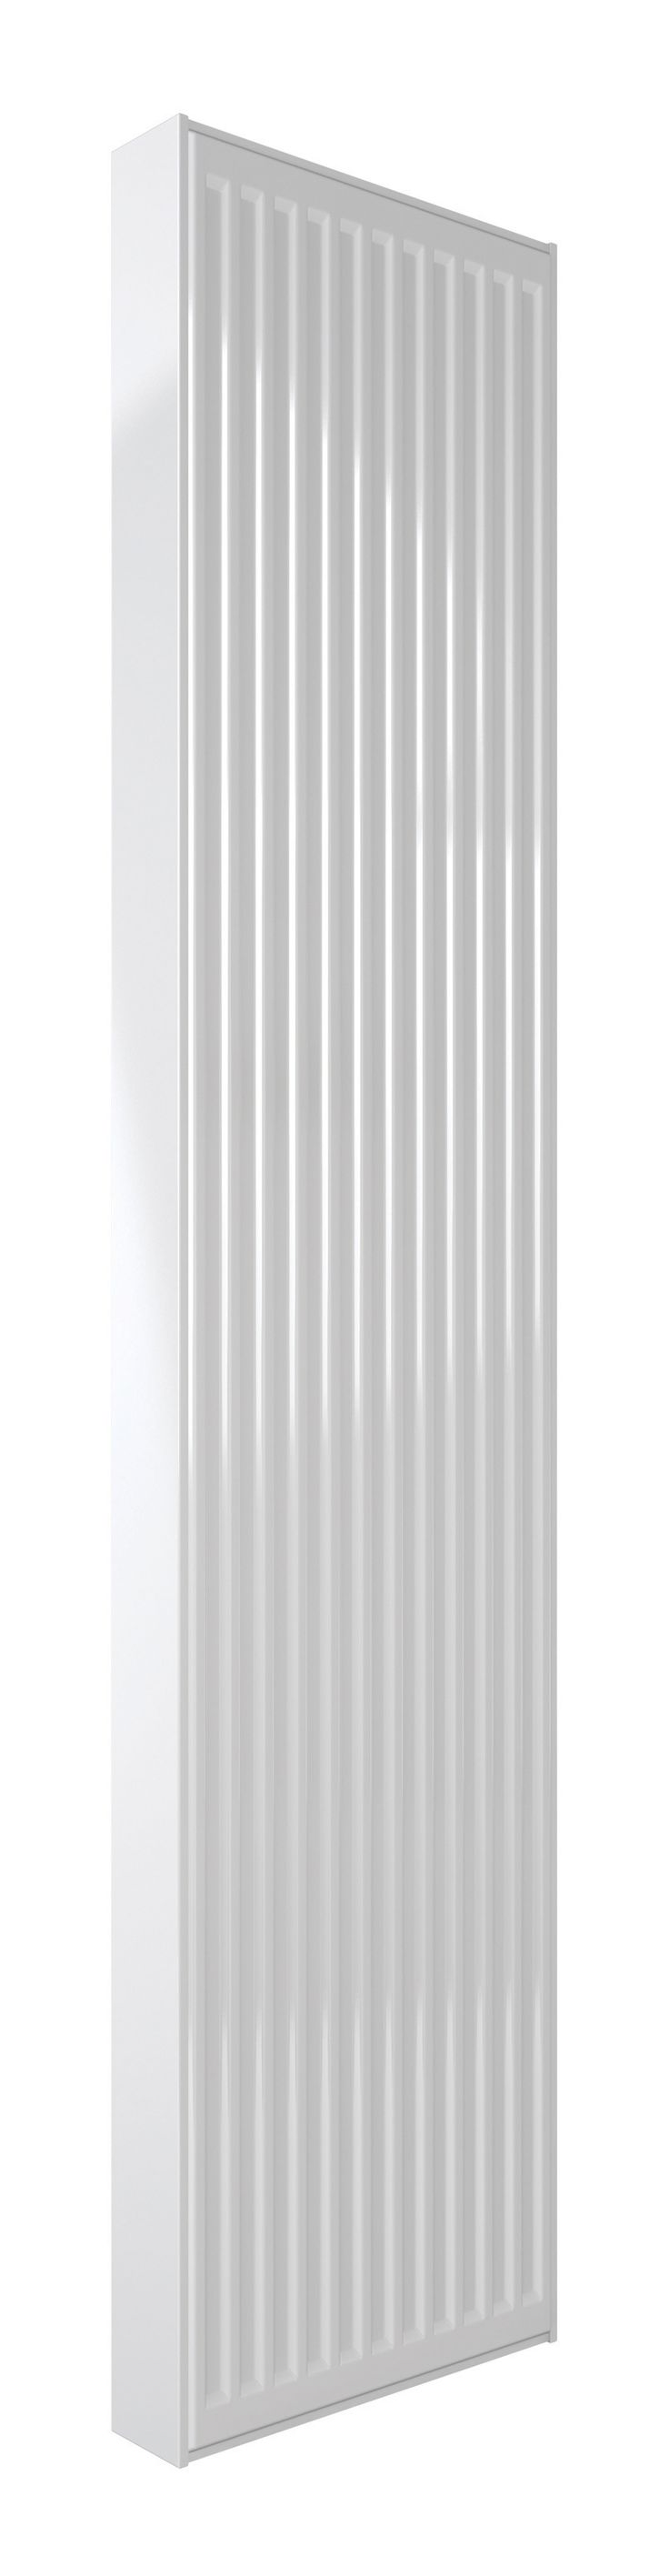 This is a compact vertical radiator for a premium space. Its a smart, stylish radiator with excellent performance.